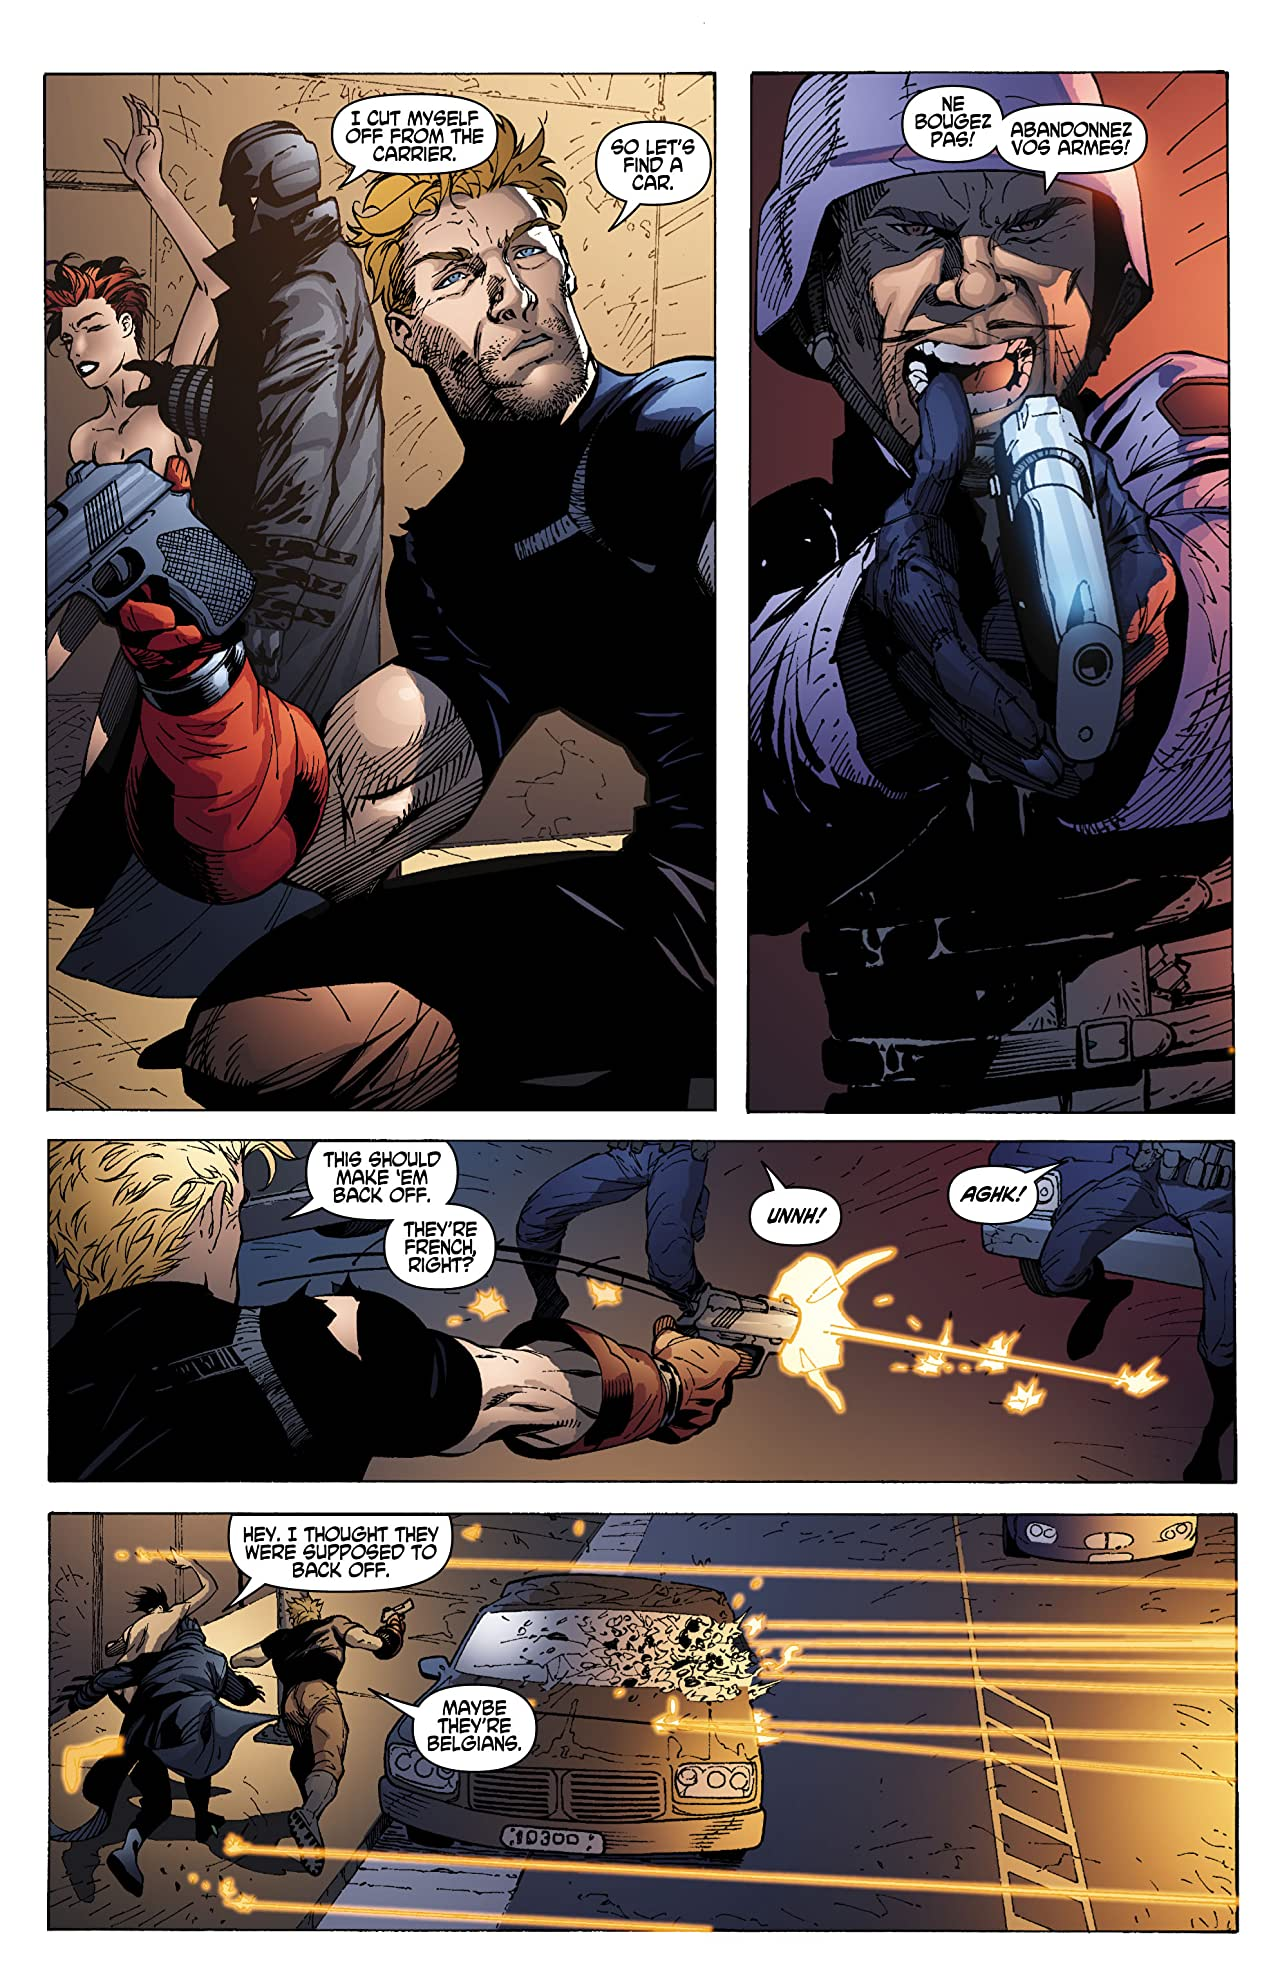 Grifter and Midnighter #5 (of 6)